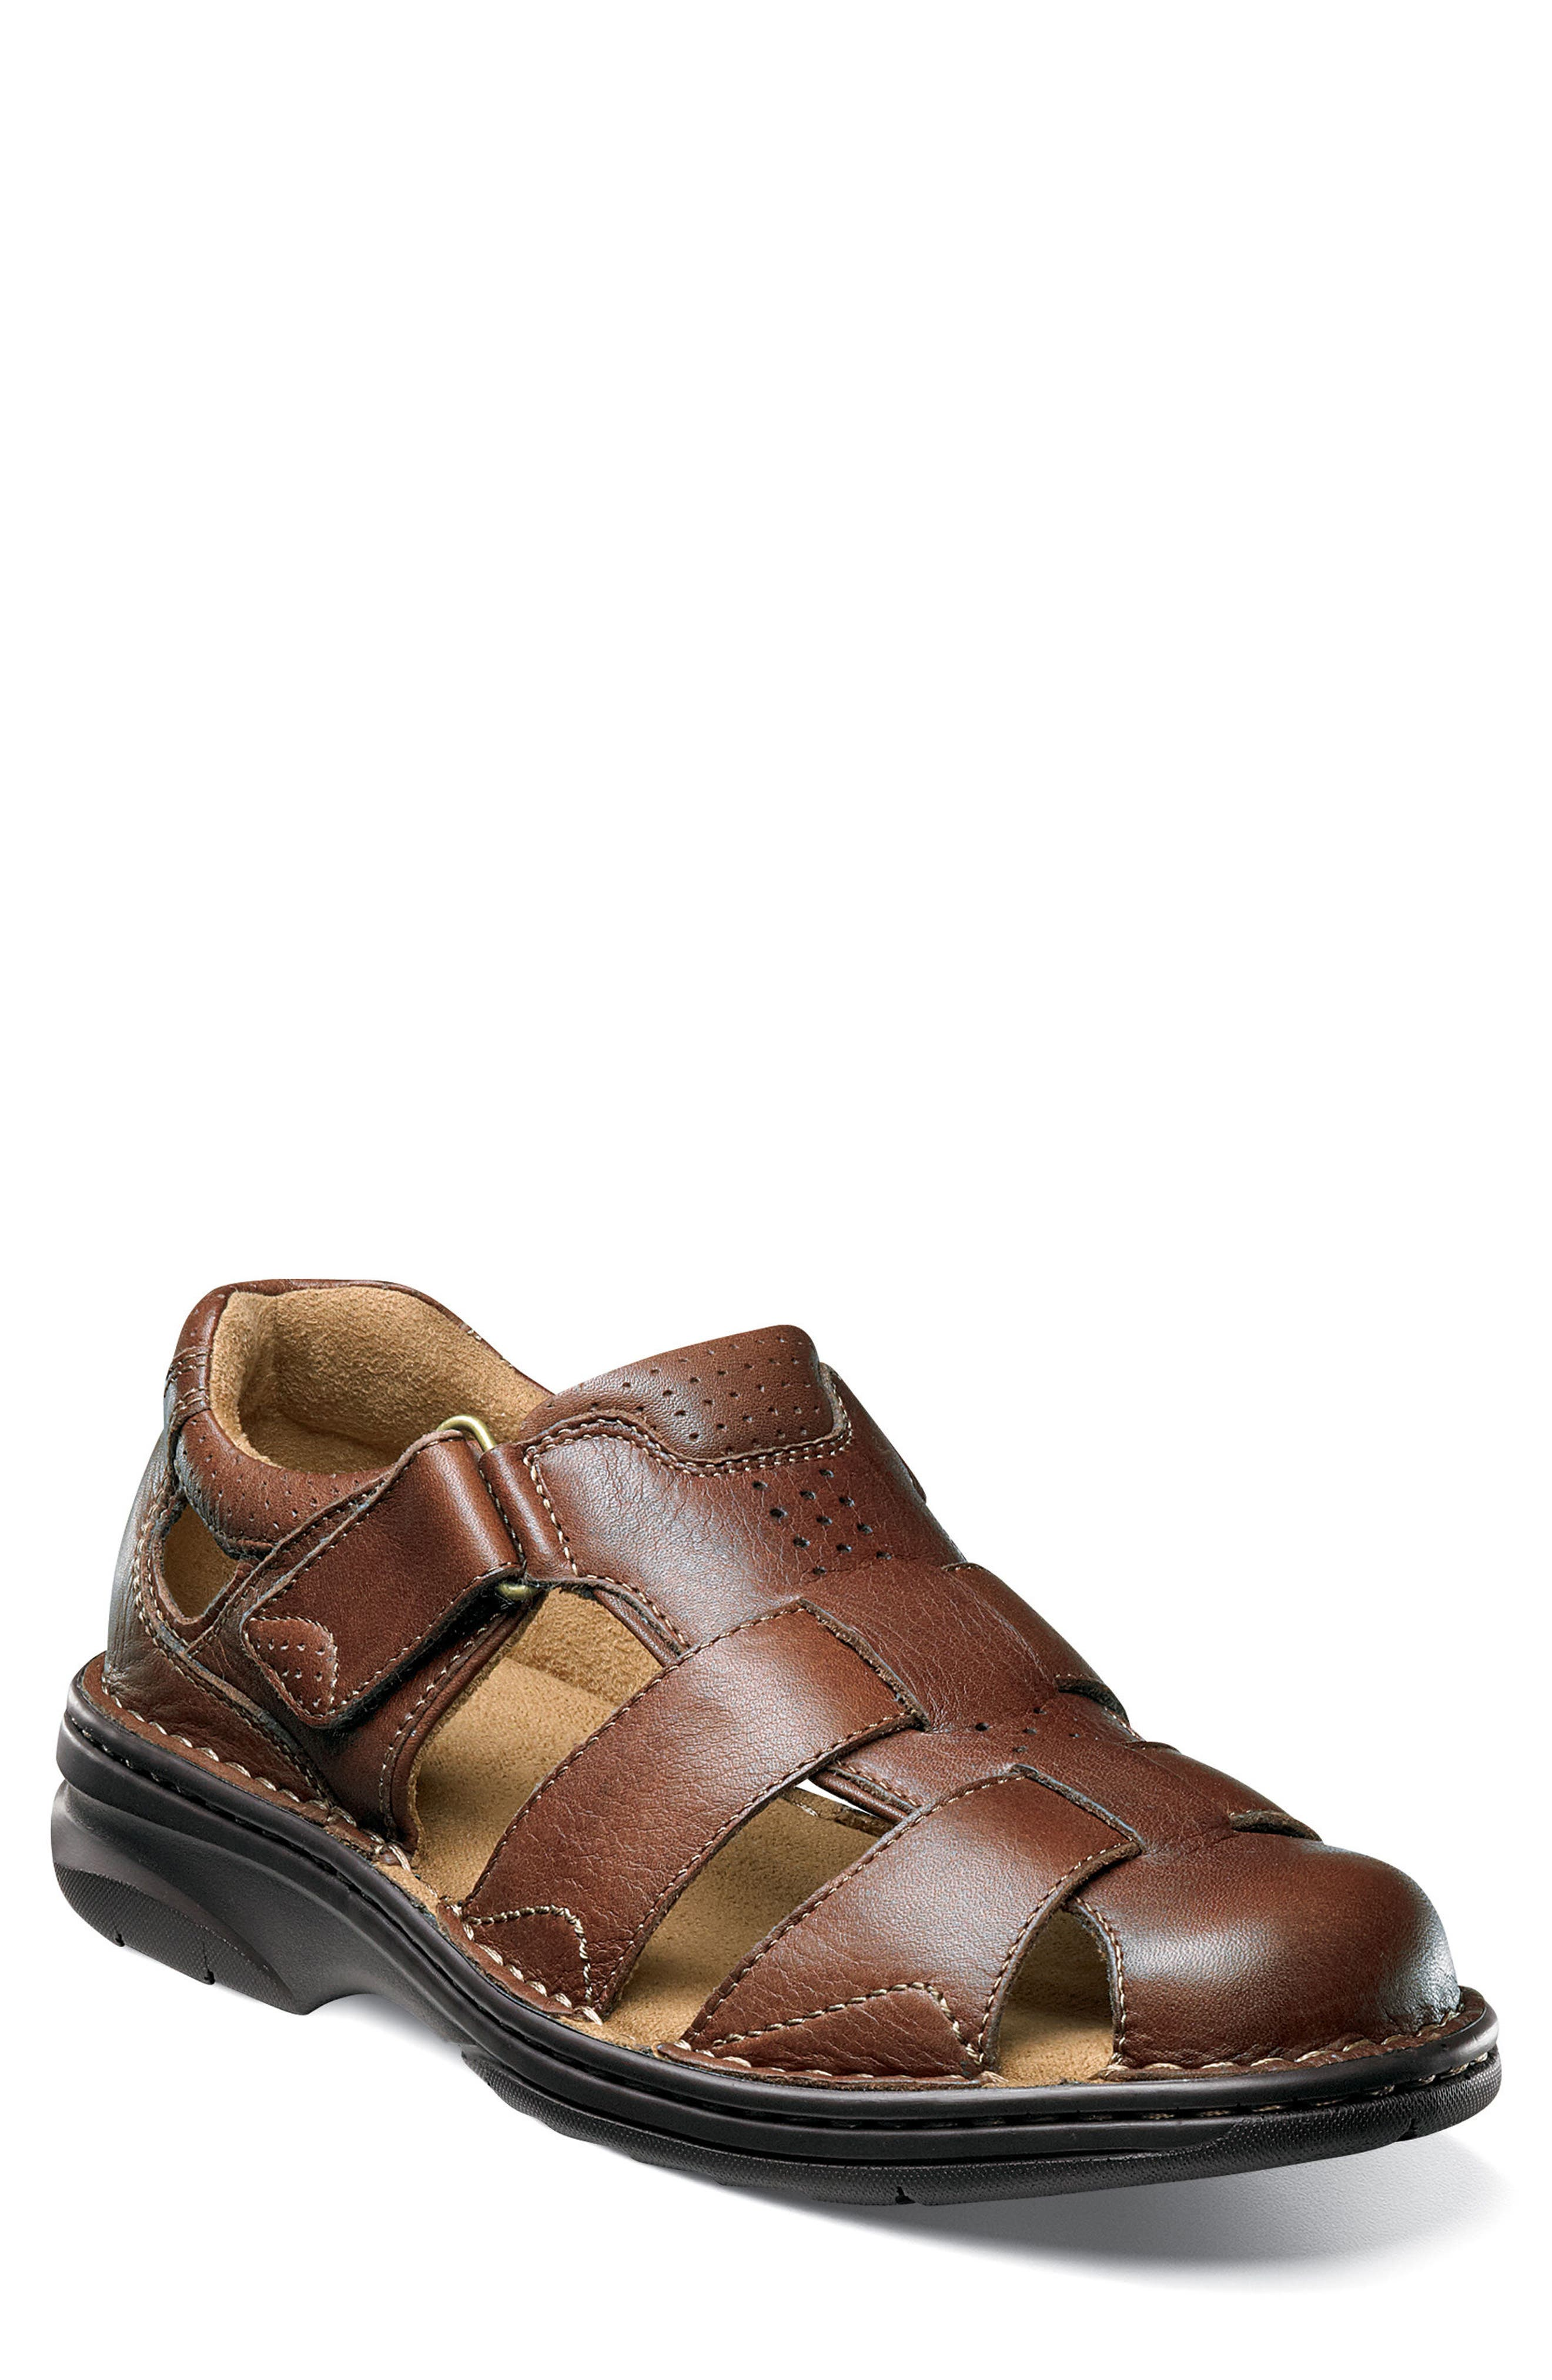 Florsheim Getaway Fisherman Sandal (Men)